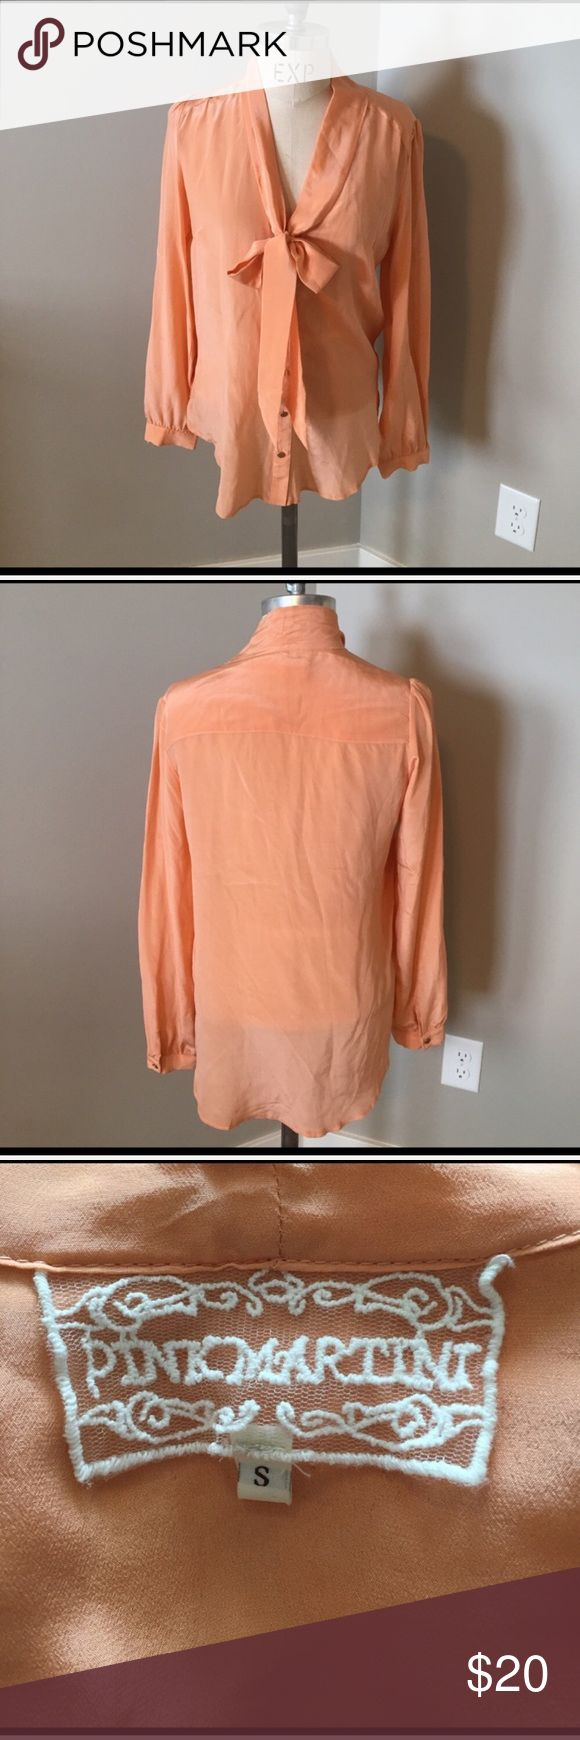 """Pink martini peach silk tie neck blouse size small 100% silk peach tie neck blouse. Gold buttons This was modeled by a fashion blogger in a fashion shoot. Size Small 20"""" from armpit to armpit laying flat. Pink Martini Tops Button Down Shirts"""